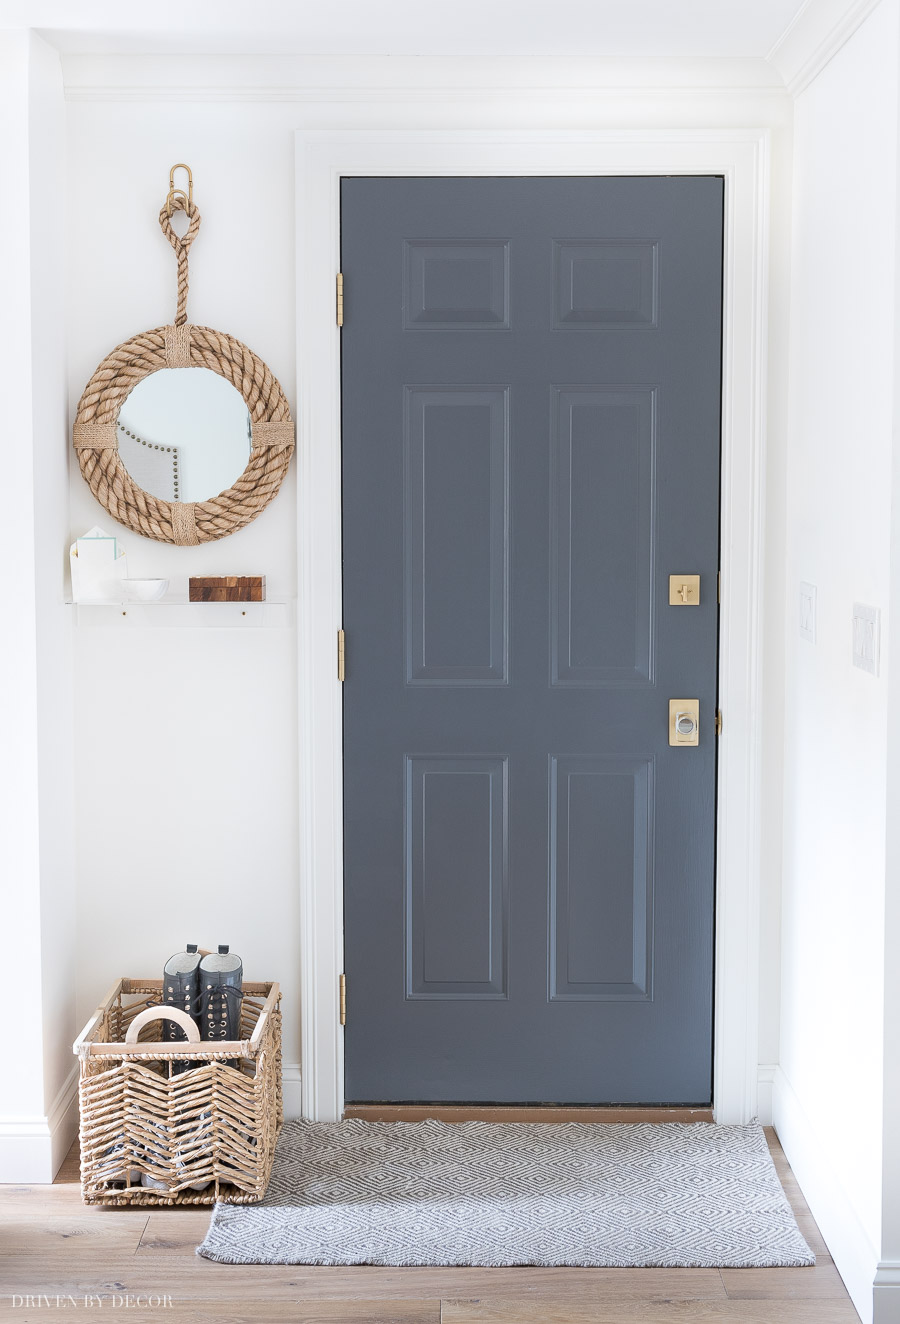 Love the small details of this garage entryway including the painted door, rug, mirror, and shelf!